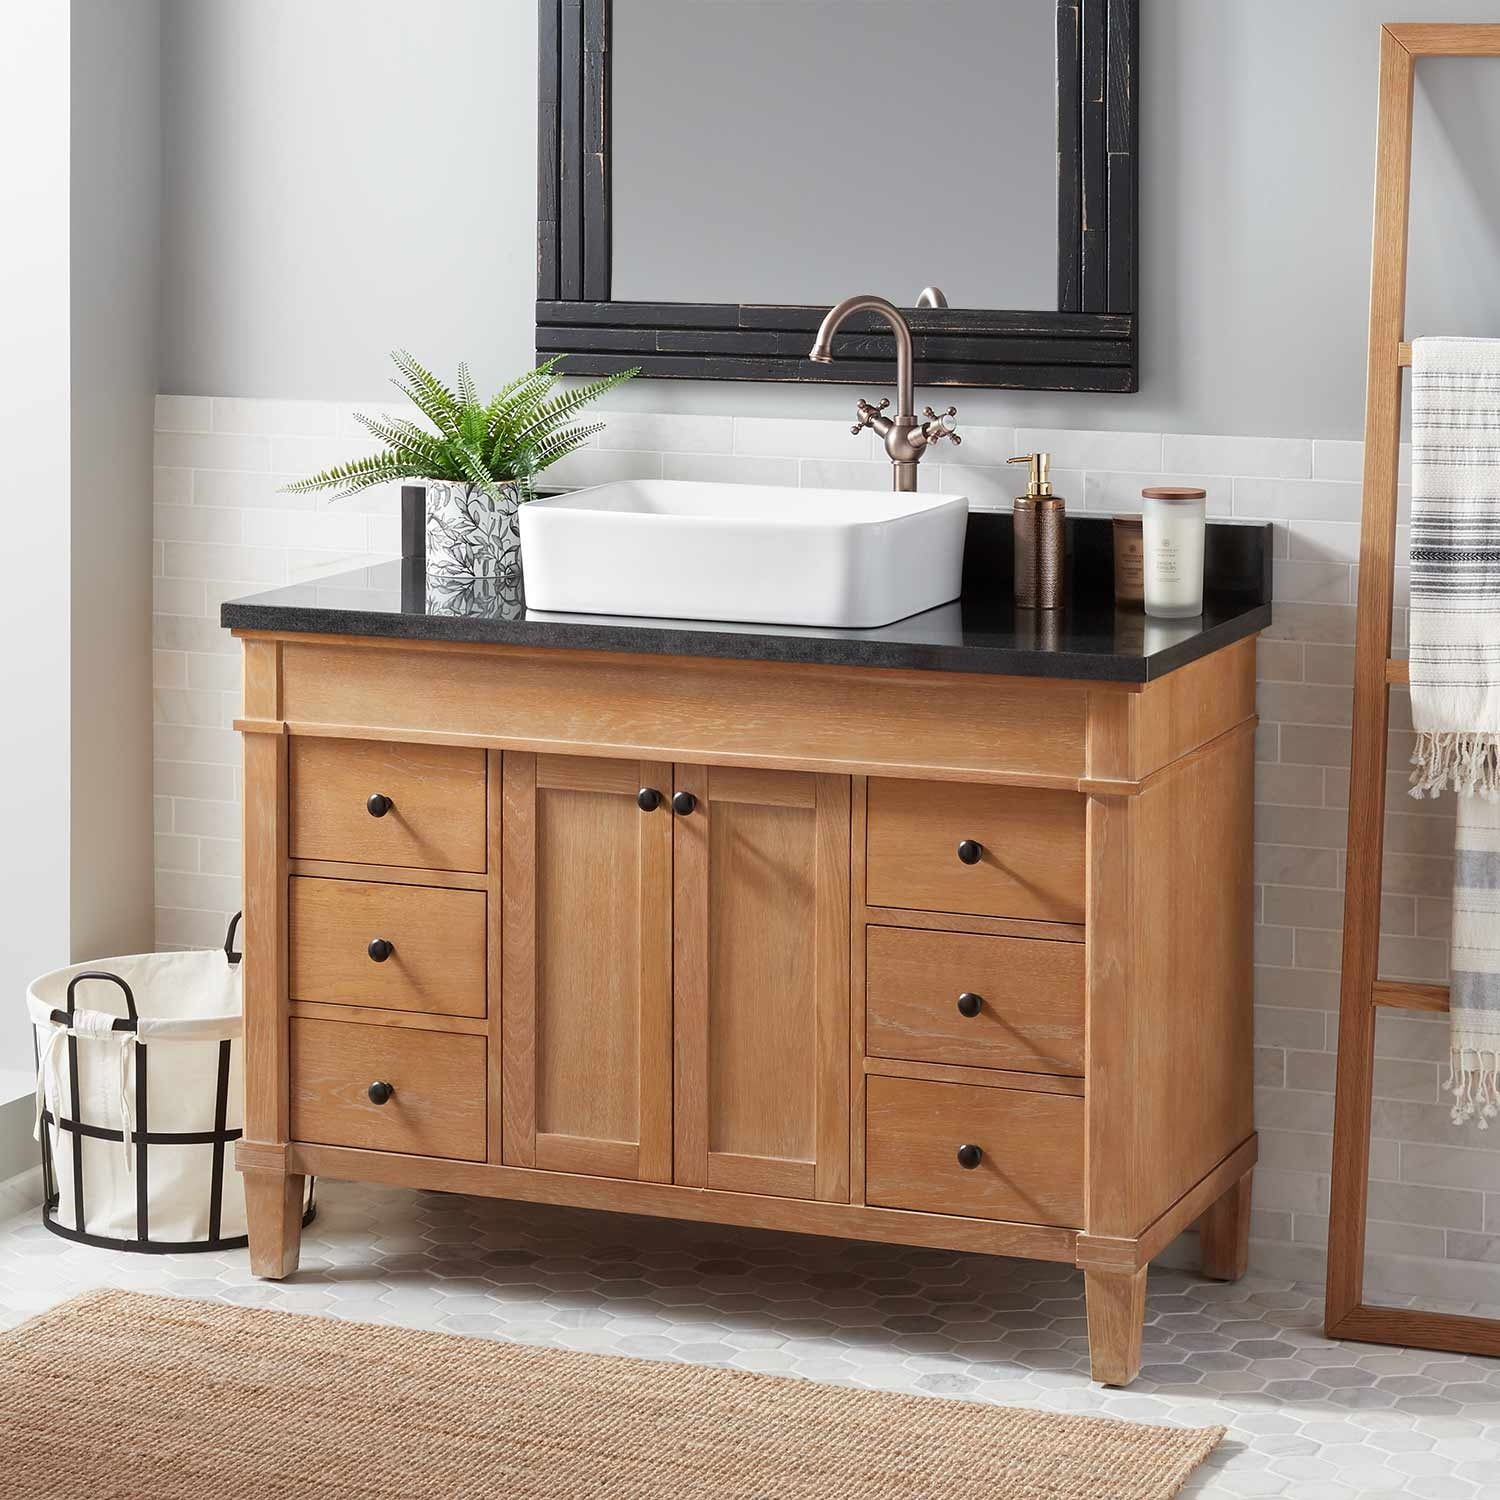 Displaying A Natural Warmth Emphasized By Unique Wood Grains The 48 48 Inch Bathroom Vanity Modern Bathroom Vanity Double Sink Bathroom Vanity [ 1500 x 1500 Pixel ]